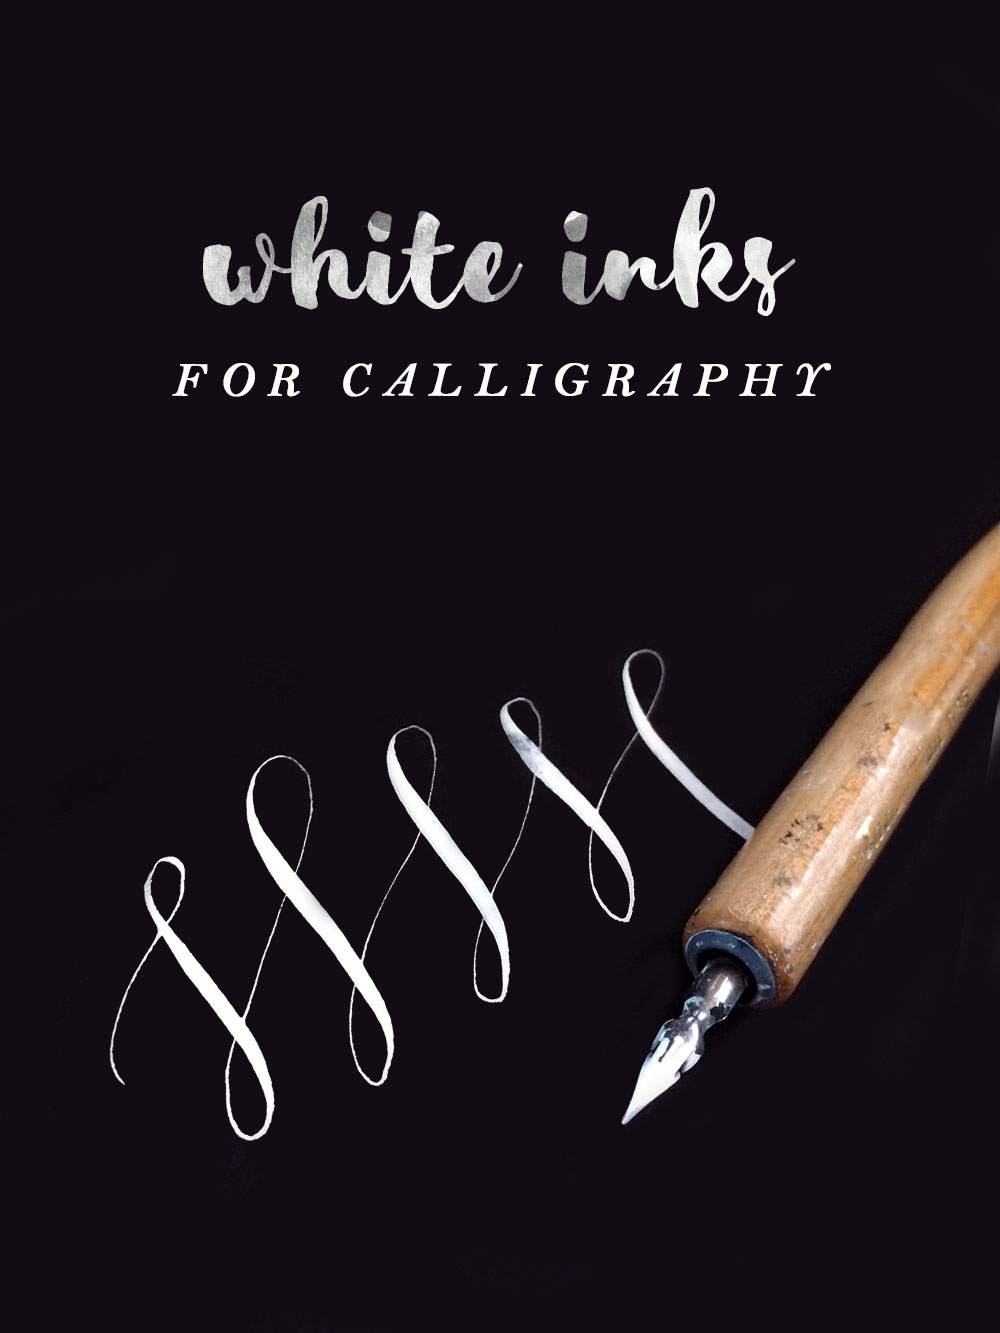 White Calligraphy Ink Review | Owl Ink